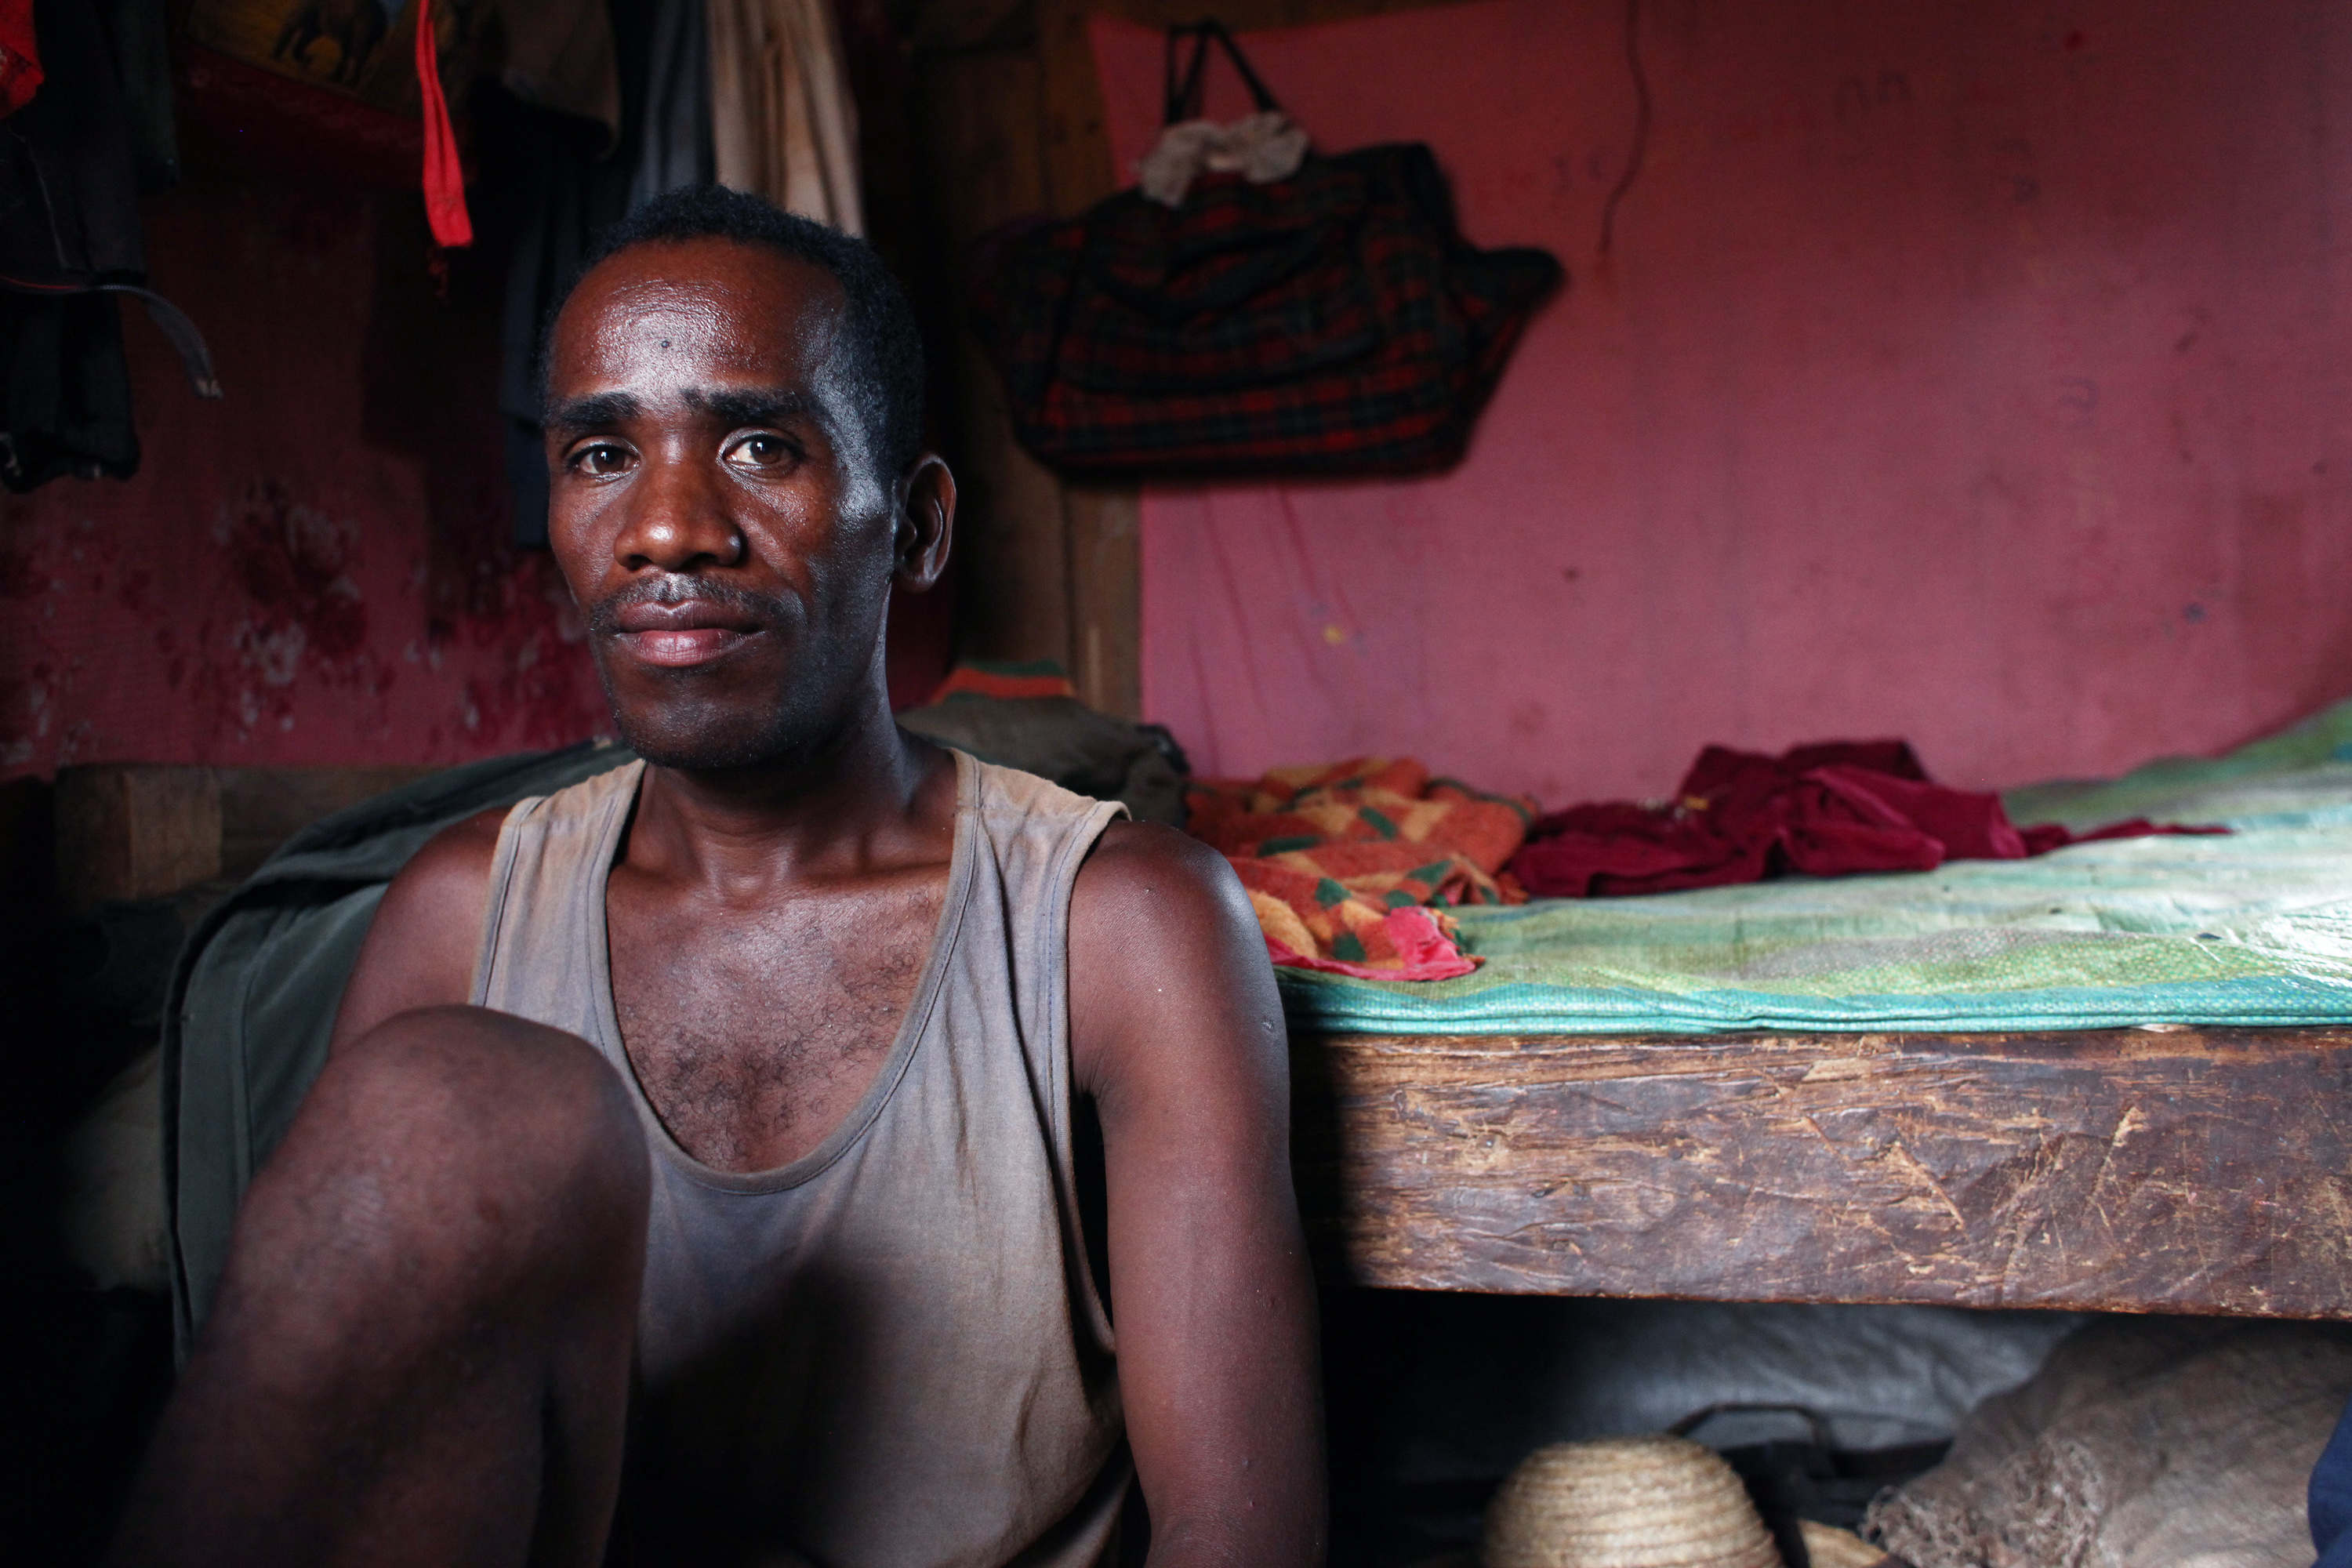 Jean-Babtiste Manjarisoa joined a volunteer brigade to fight locusts in south Madagascar